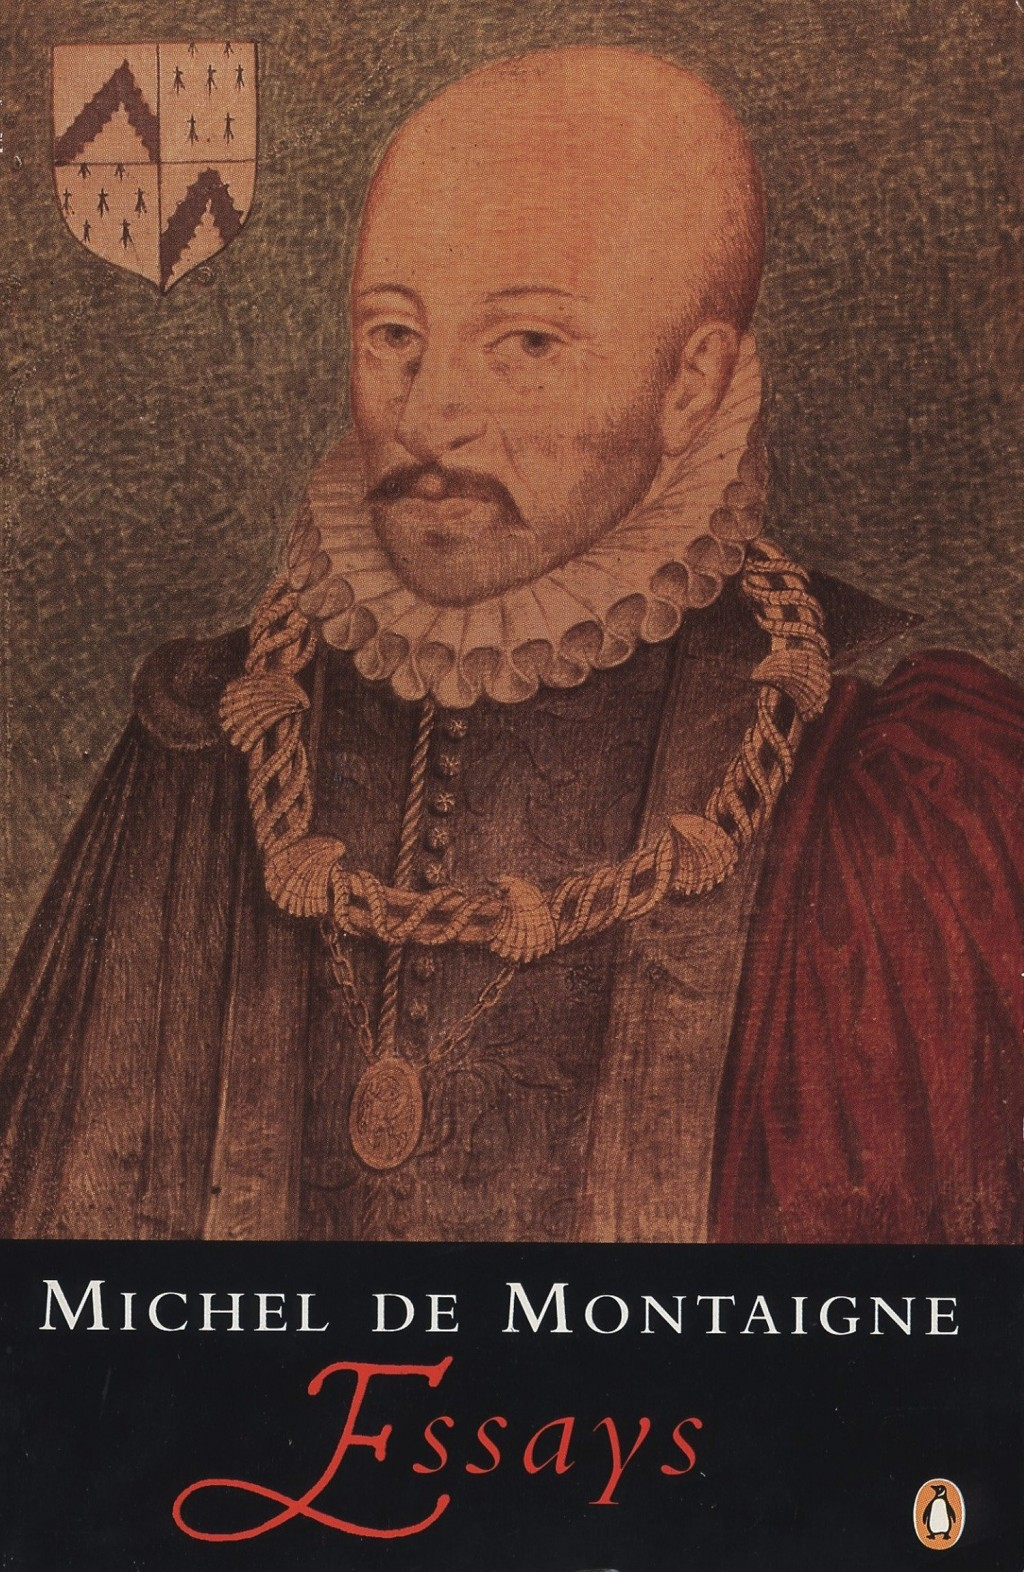 004 Montaigne Essays 91rkj2zfmvl Essay Archaicawful Summary On Experience Quotes Best Translation Large